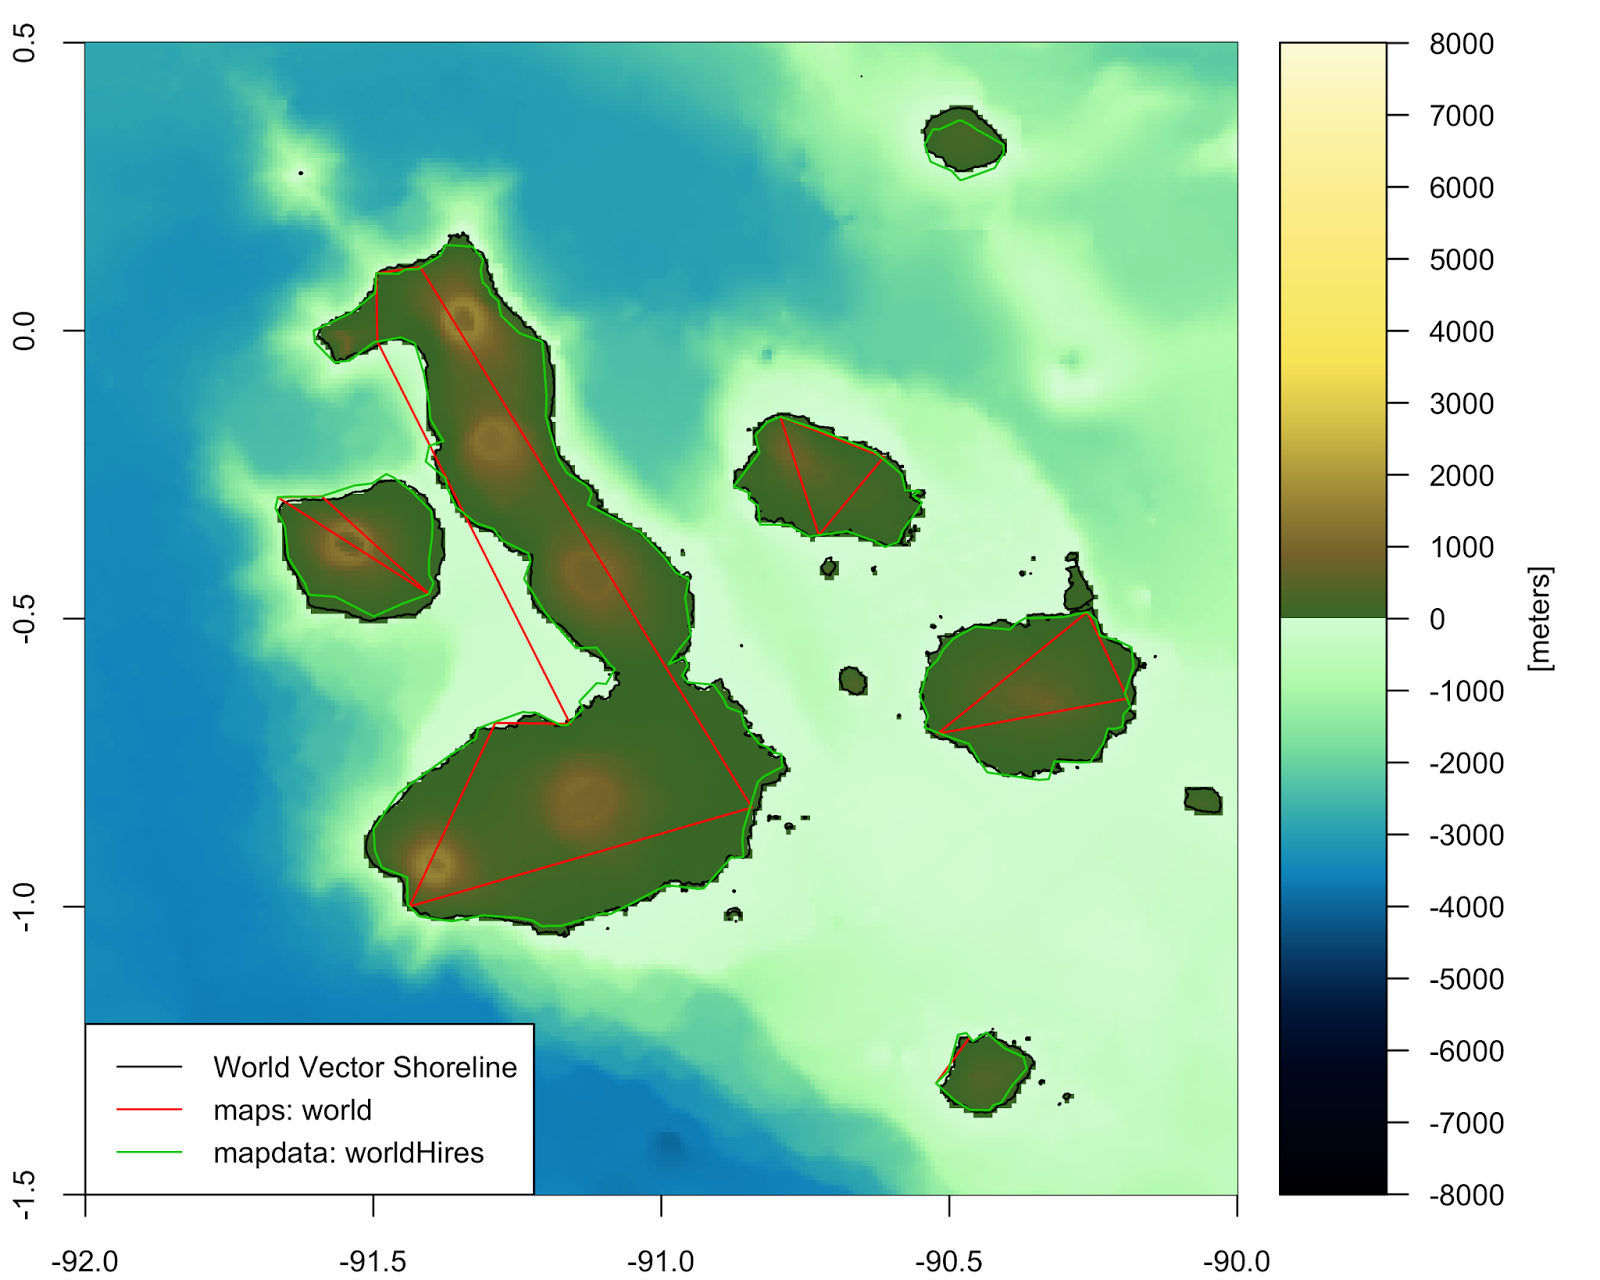 Importing bathymetry and coastline data in R | R-bloggers